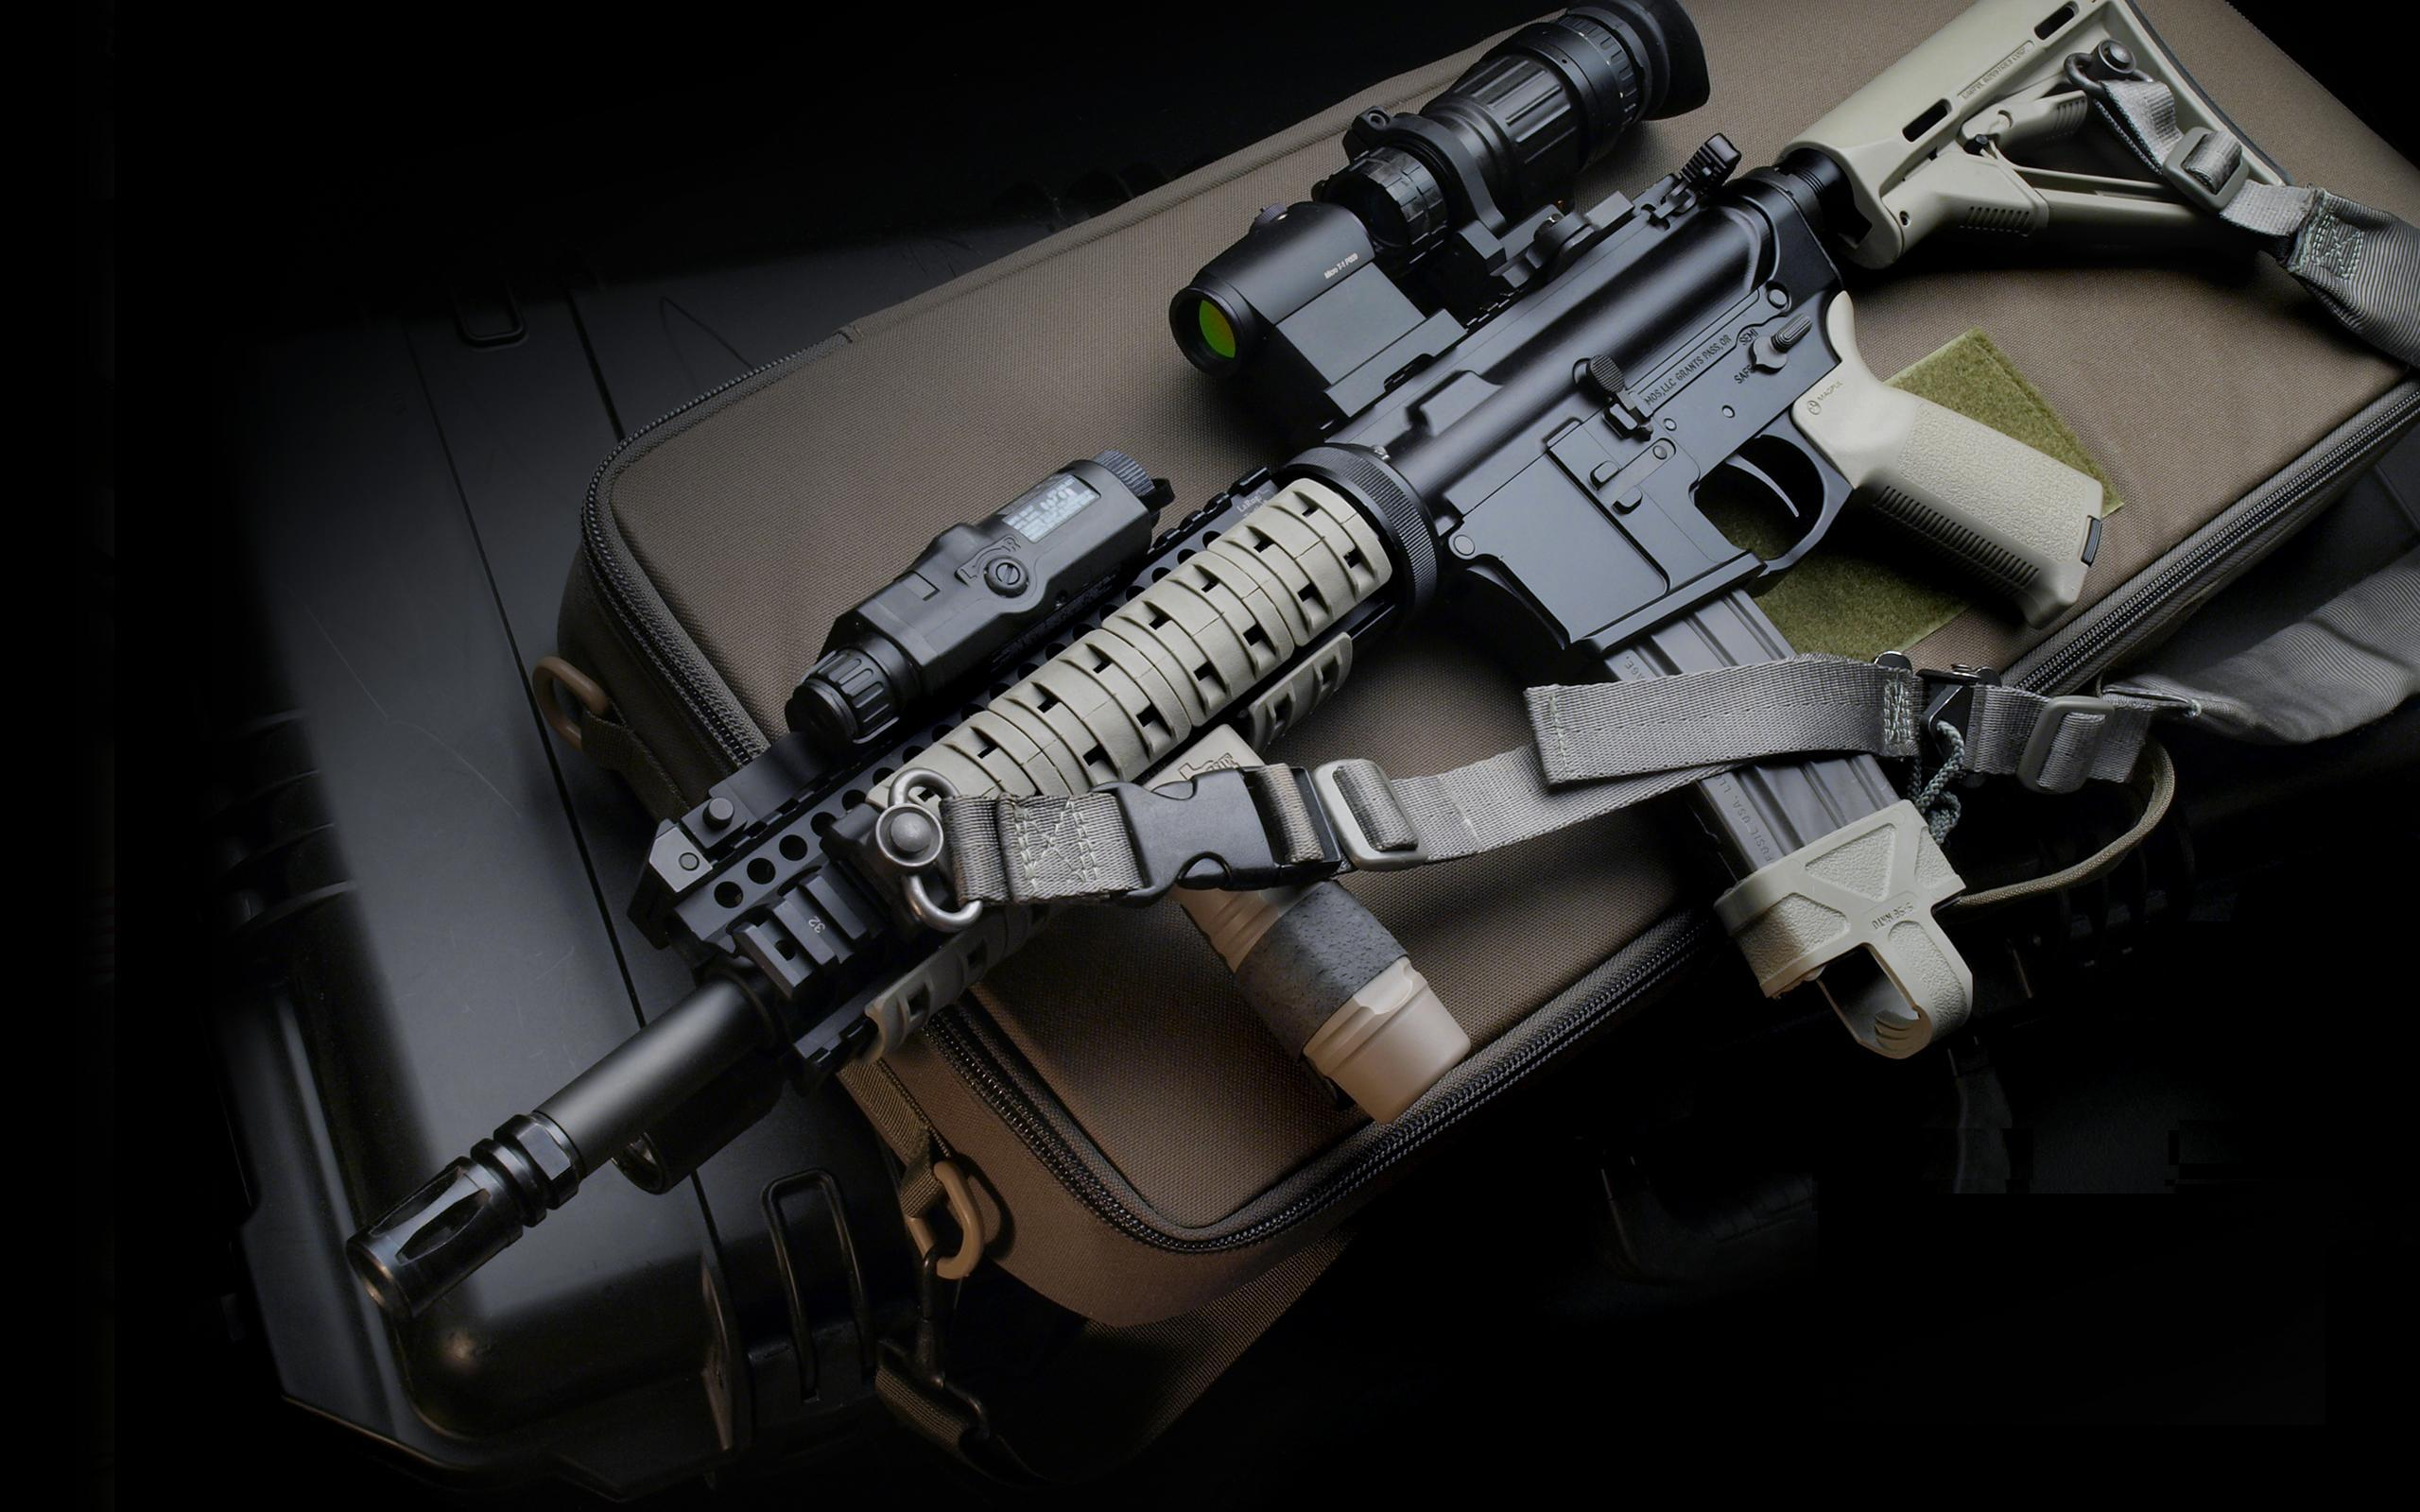 m16 gun wallpaper desktop - photo #13